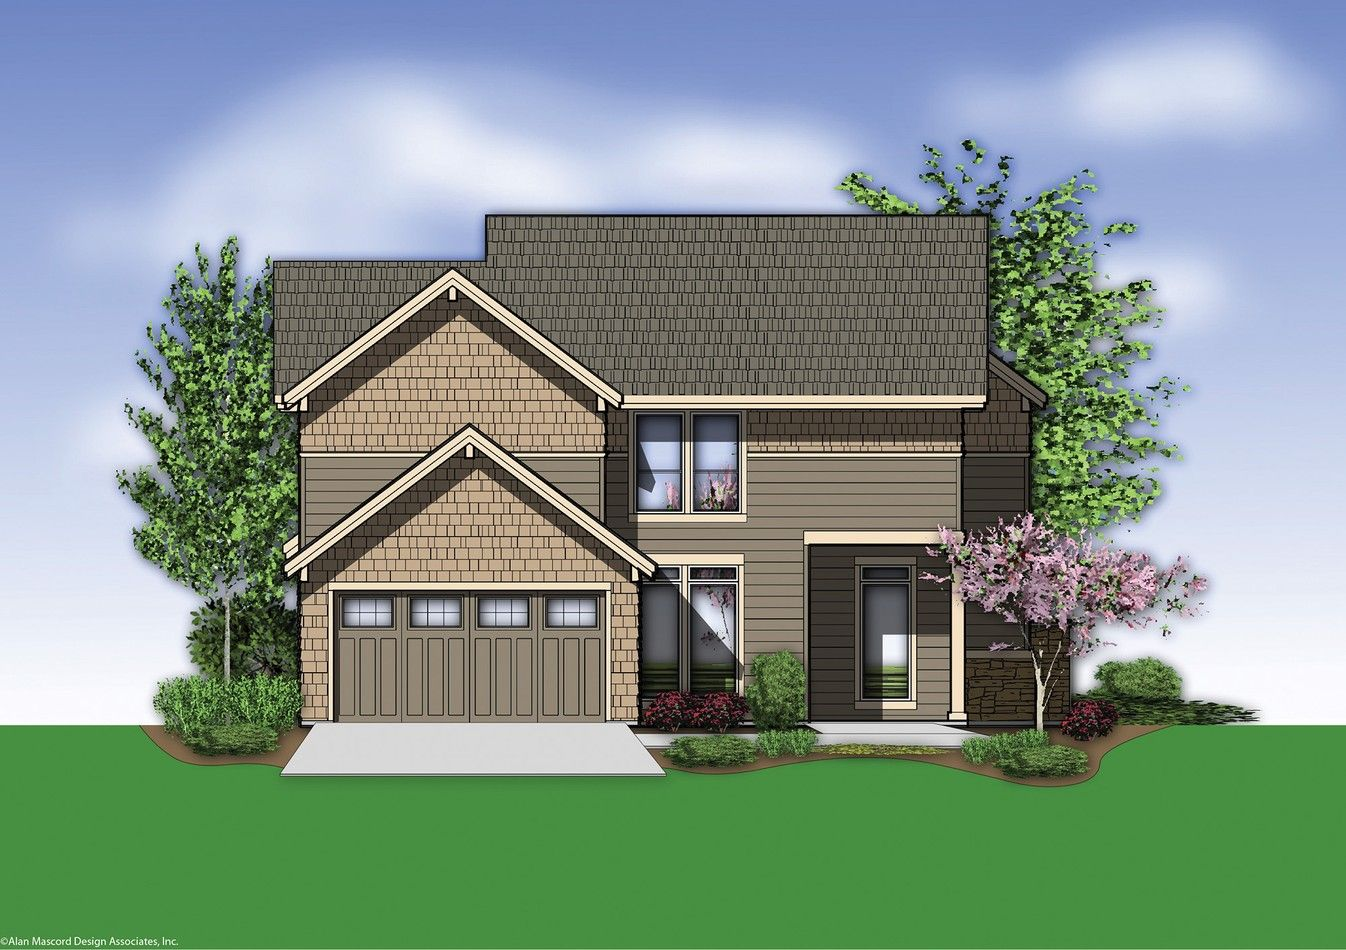 mascord house plan 22170 the mayfield craftsman house